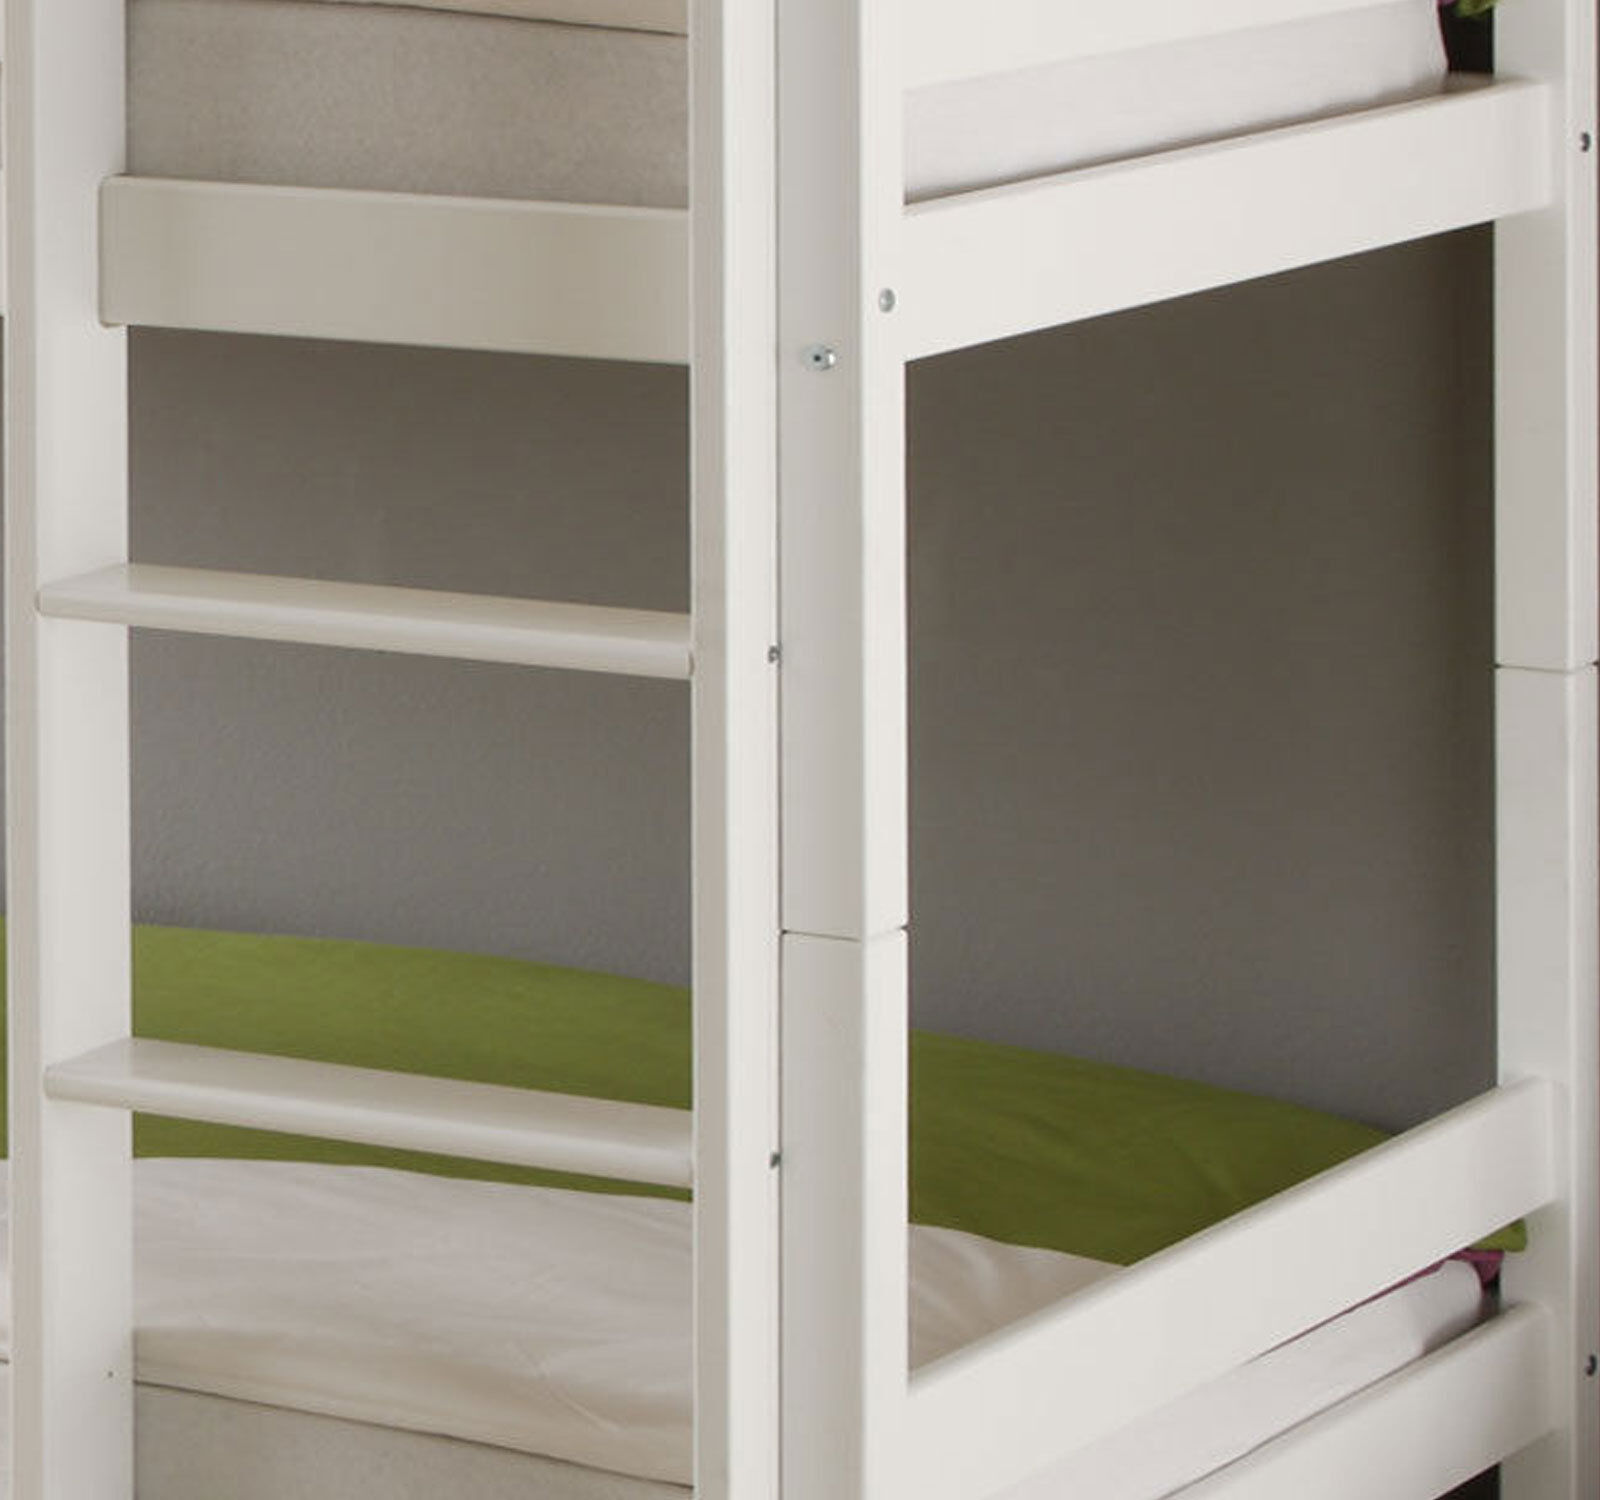 kinderbett etagenbett weiss hochbett spielbett massiv stockbett 90 x 200 cm bett eur 129 00. Black Bedroom Furniture Sets. Home Design Ideas